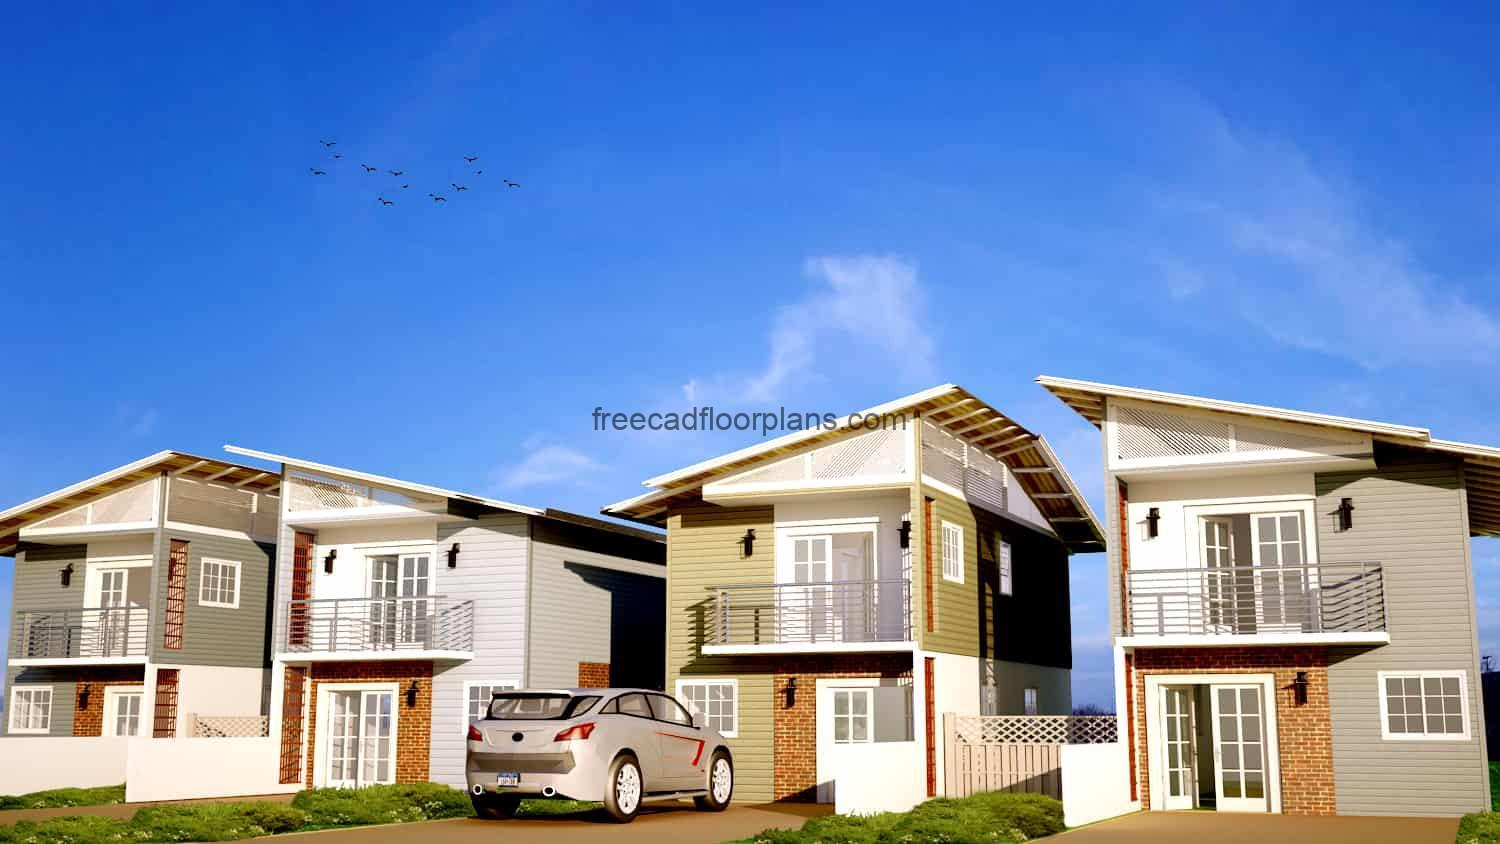 Complete architectural project of a small two-level townhouse, plans in DWG Autocad format